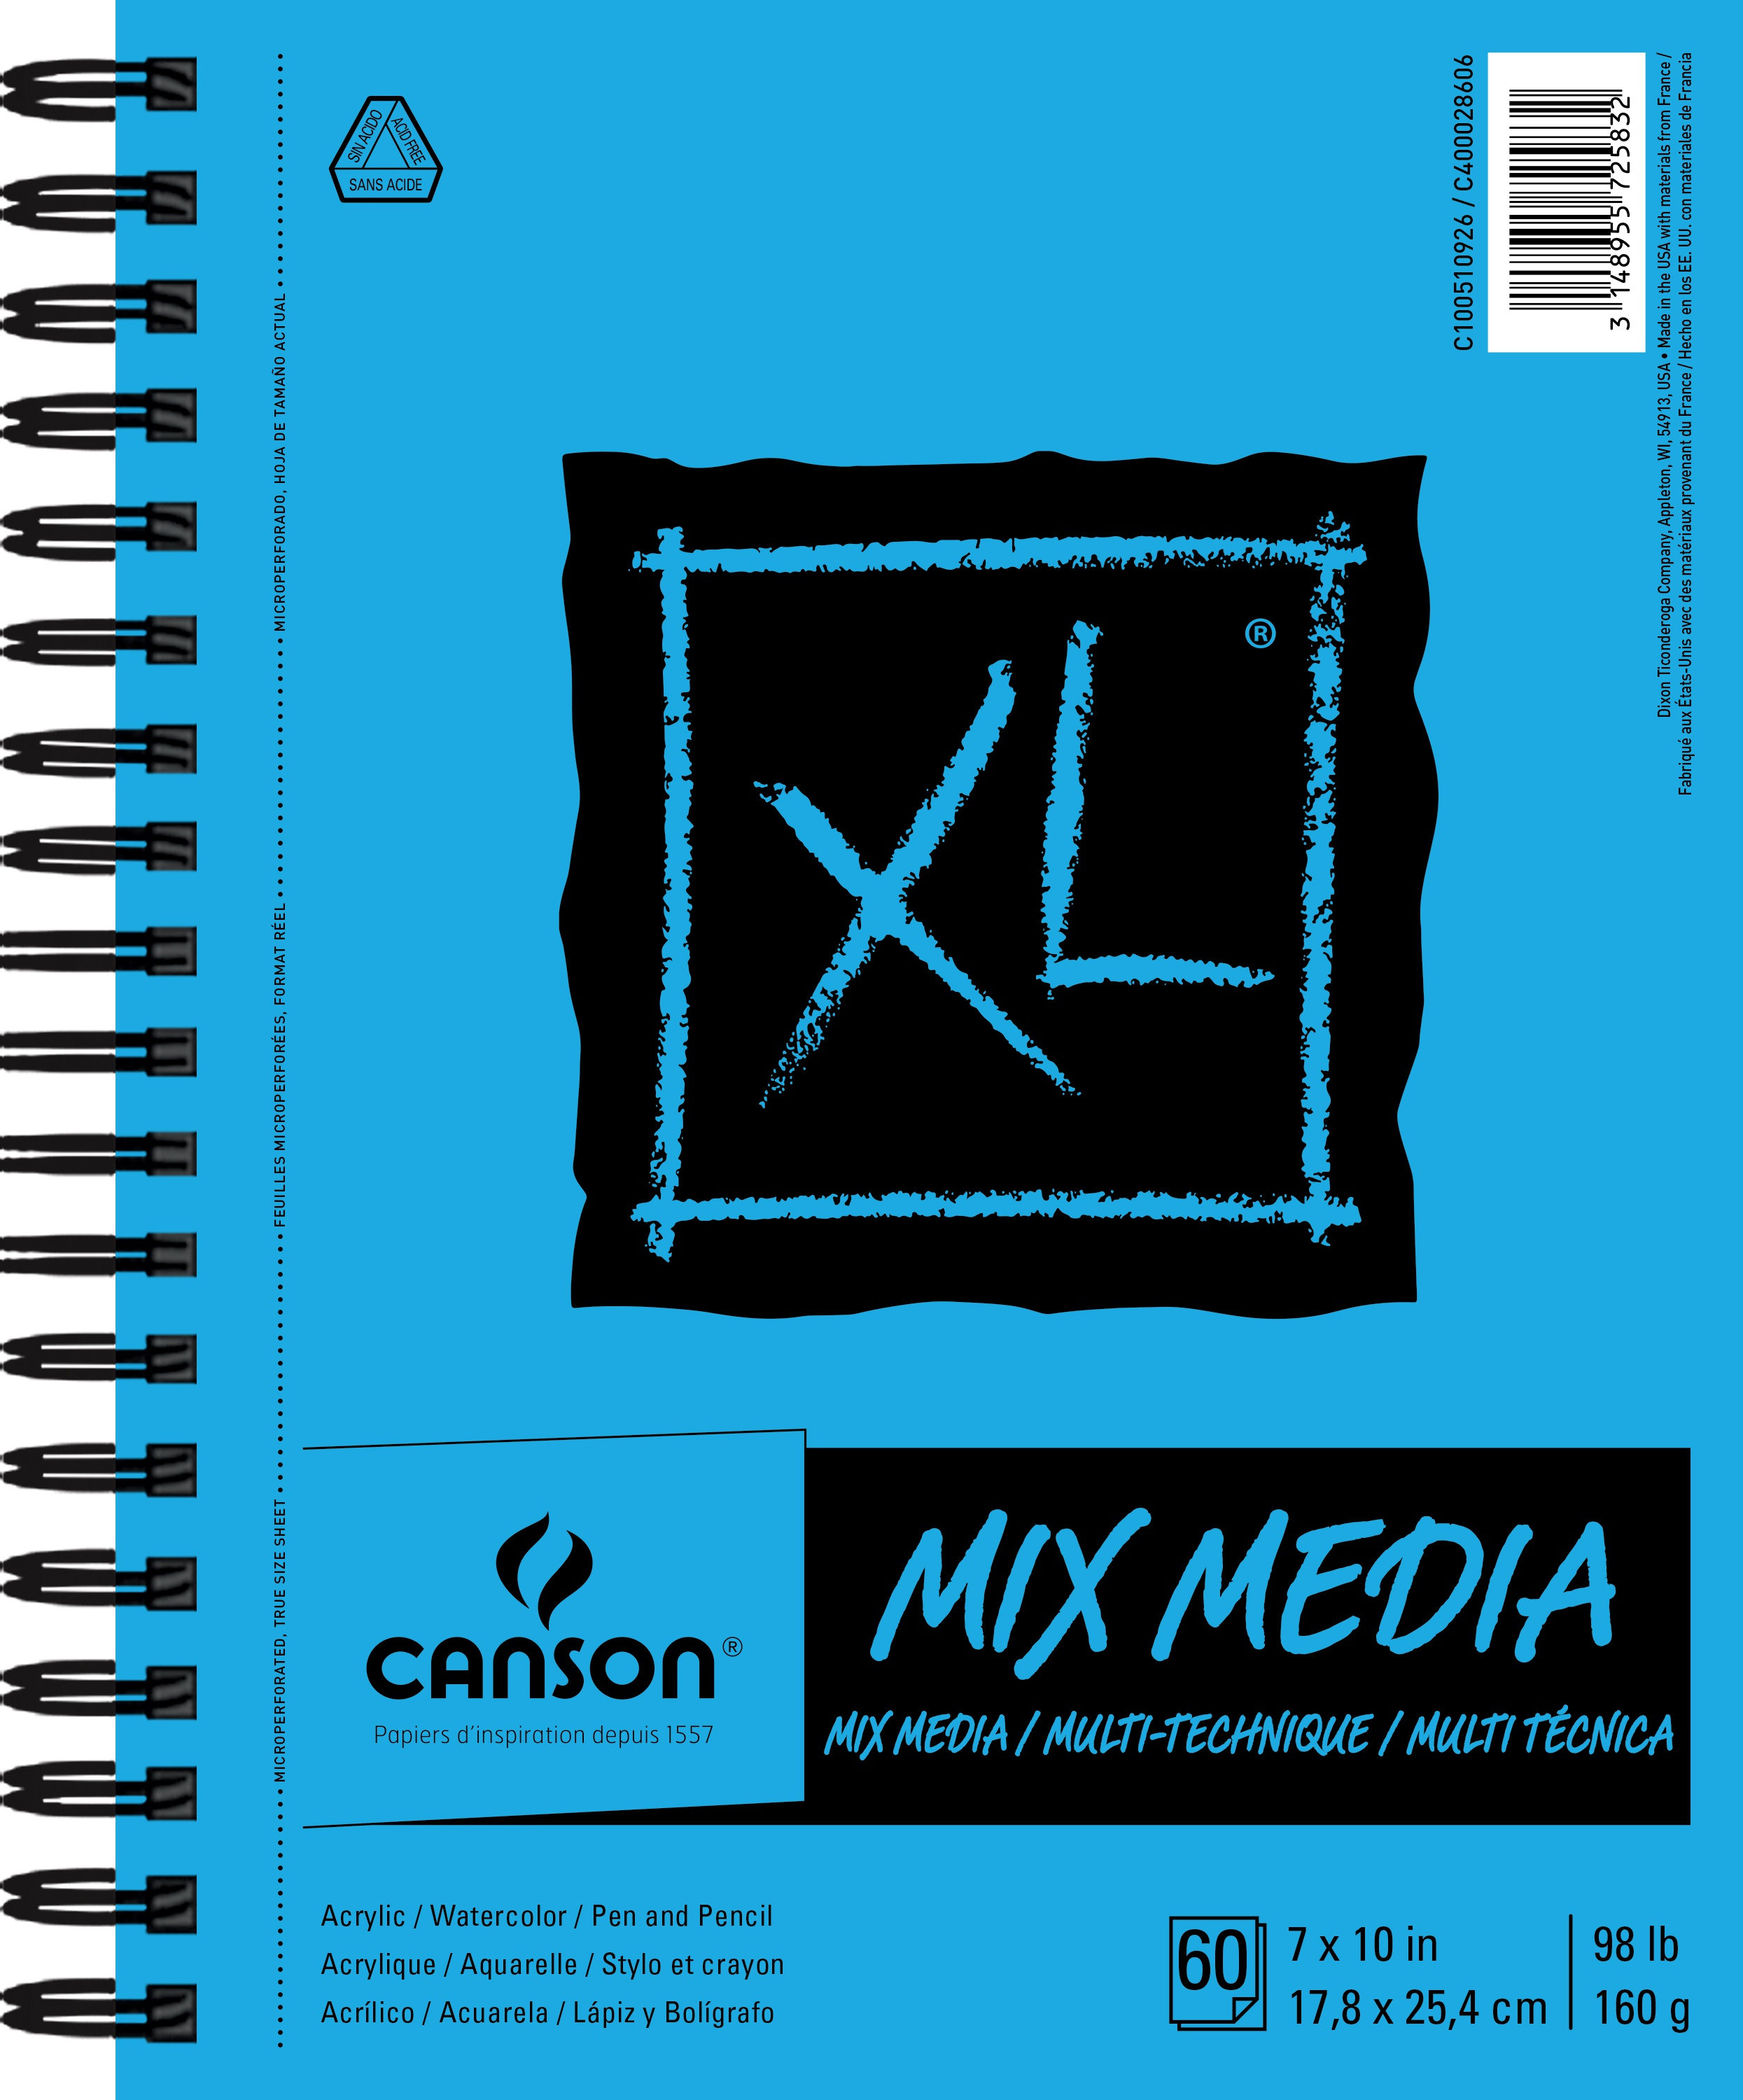 Canson XL Spiral Multi-Media Paper Pad 7X10-60 Sheets